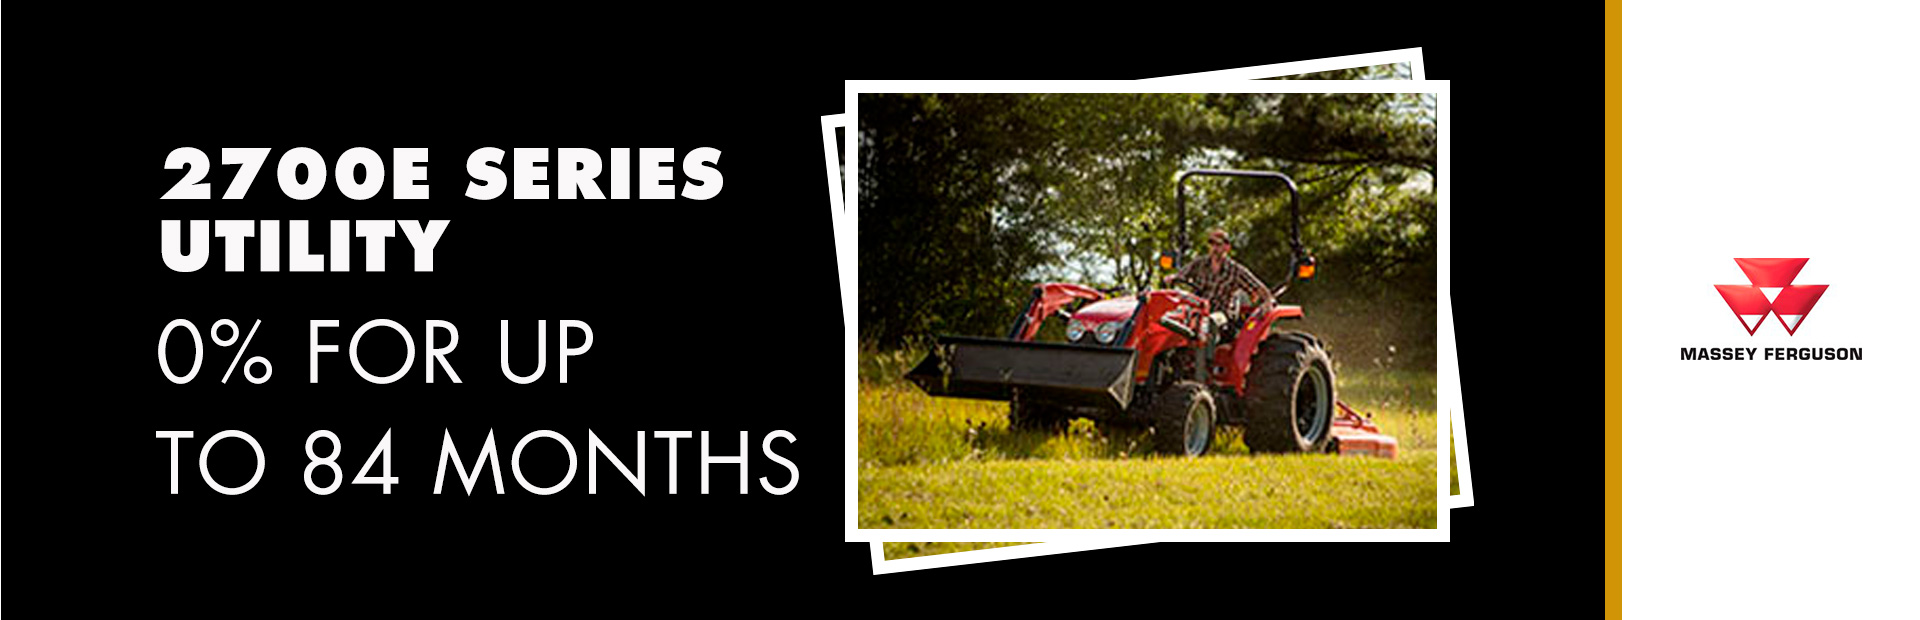 Massey Ferguson: 2700E Series Utility - 0% for up to 84 Months